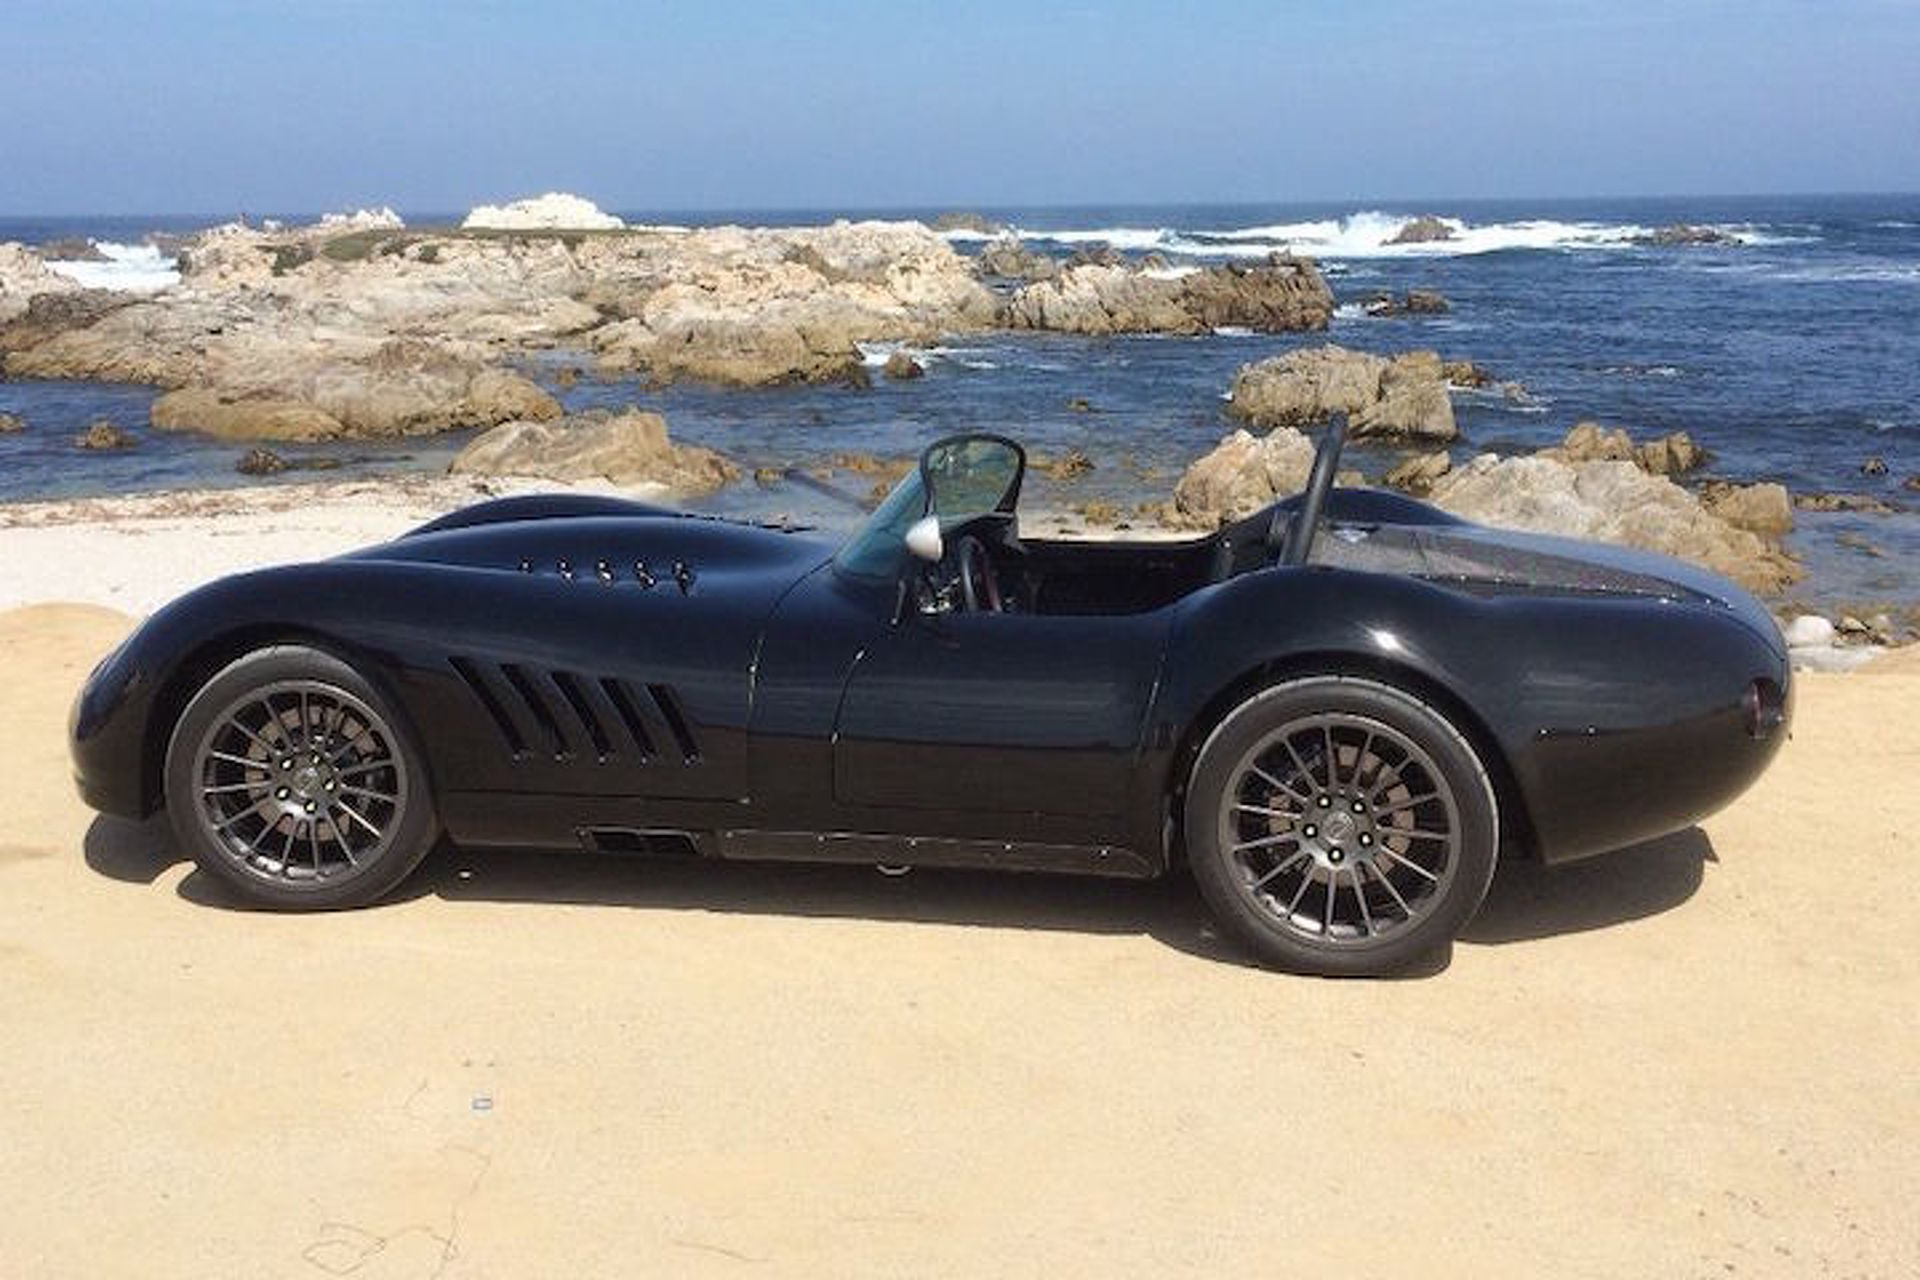 For $117,000, This Lighweight Lucra Looks Lovely